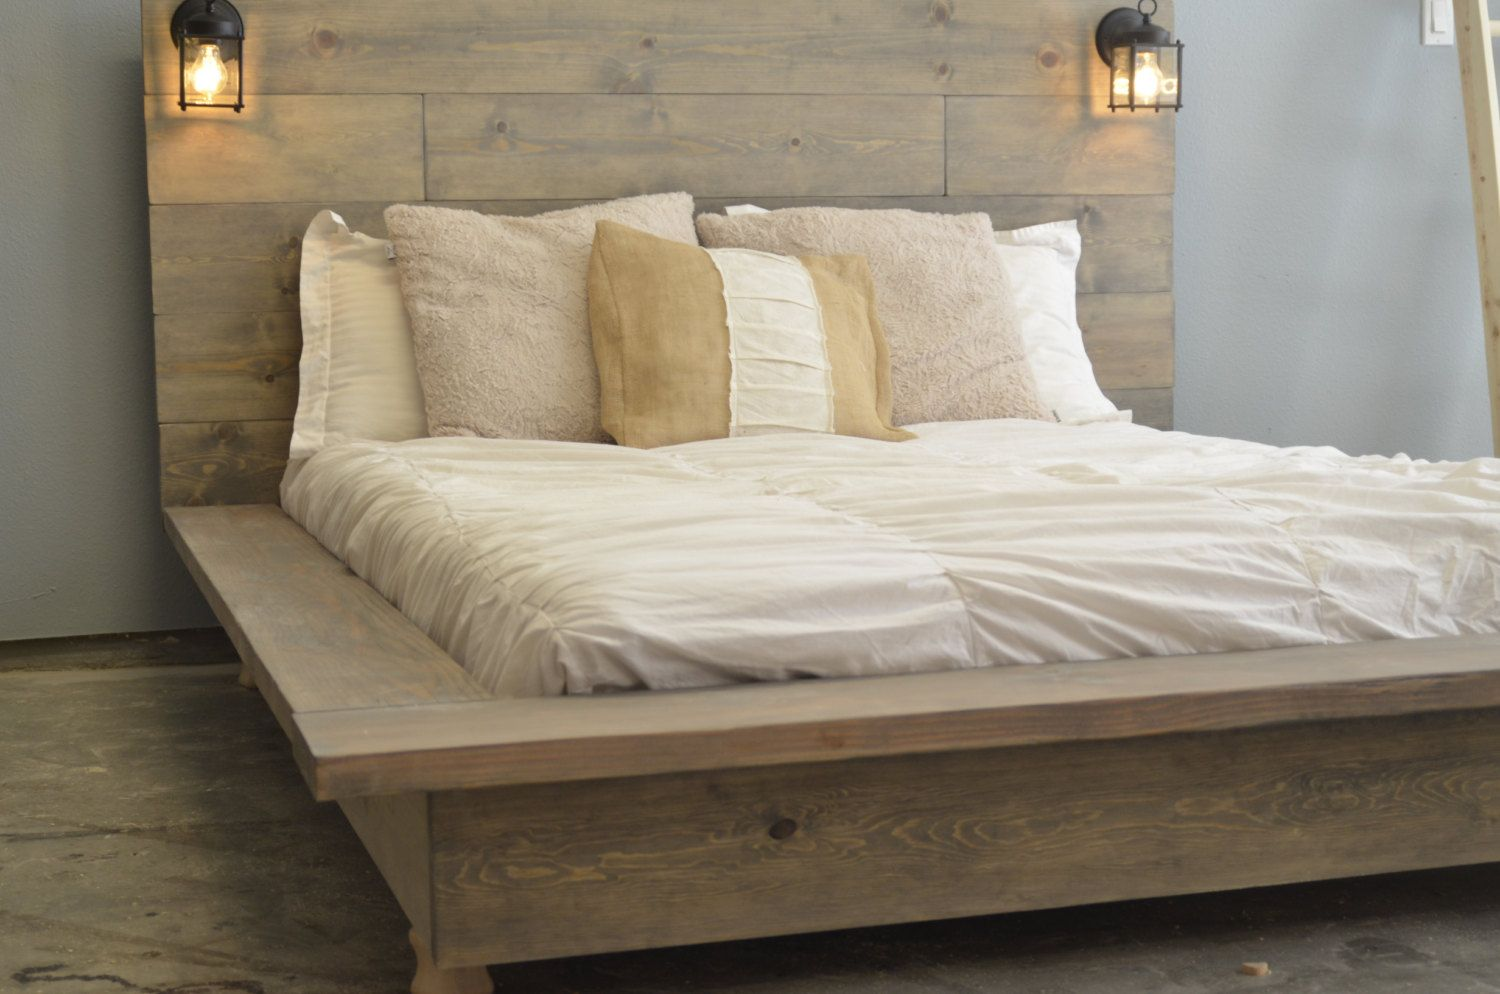 best  bed frames for sale ideas on pinterest  bed frame sale  - best  bed frames for sale ideas on pinterest  bed frame sale gardenbench sale and garden benches for sale